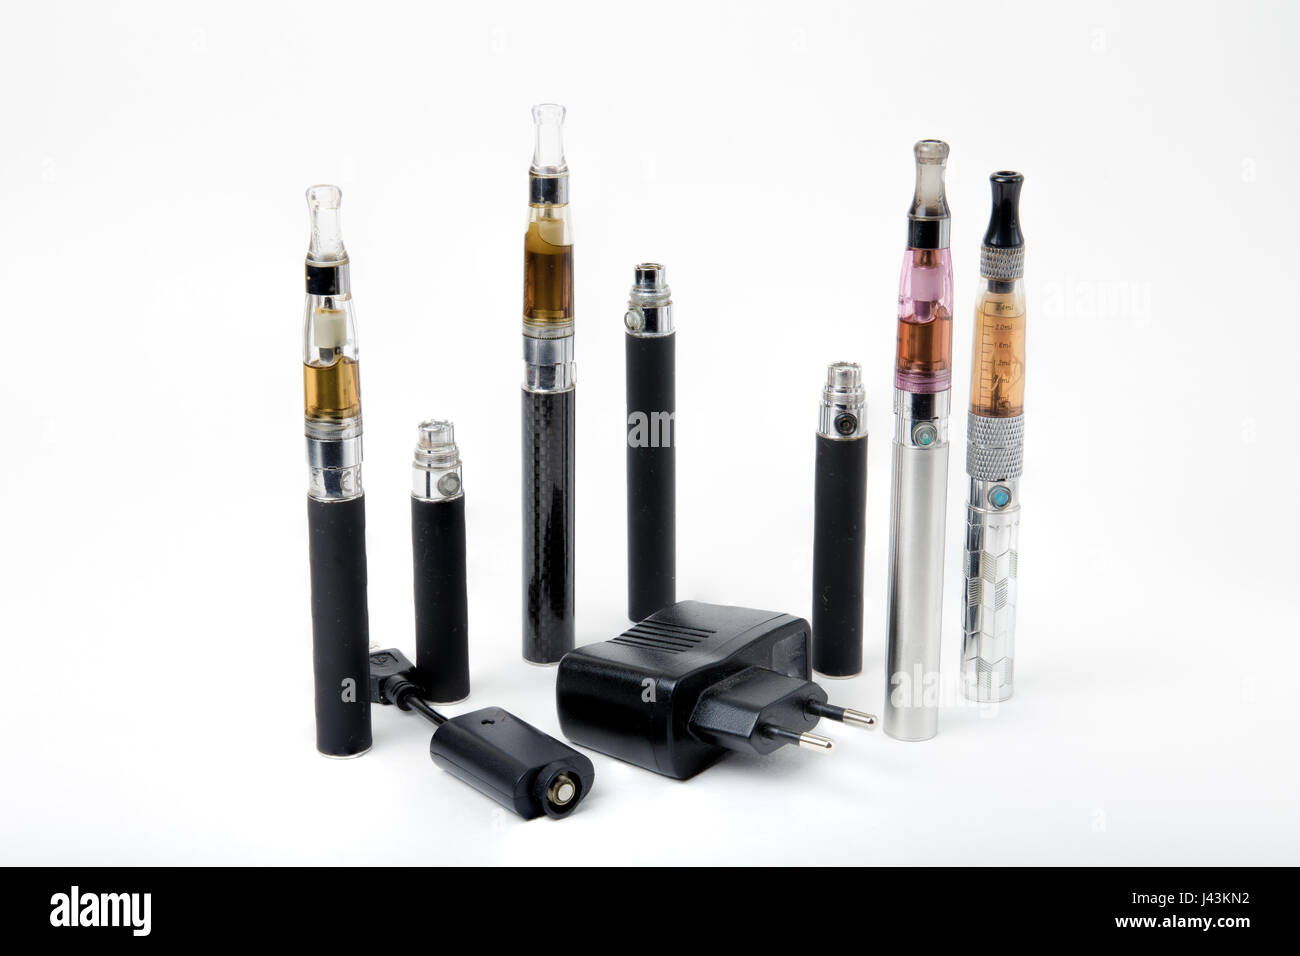 Thin e-cigarettes with charger and smoke on white background - Stock Image